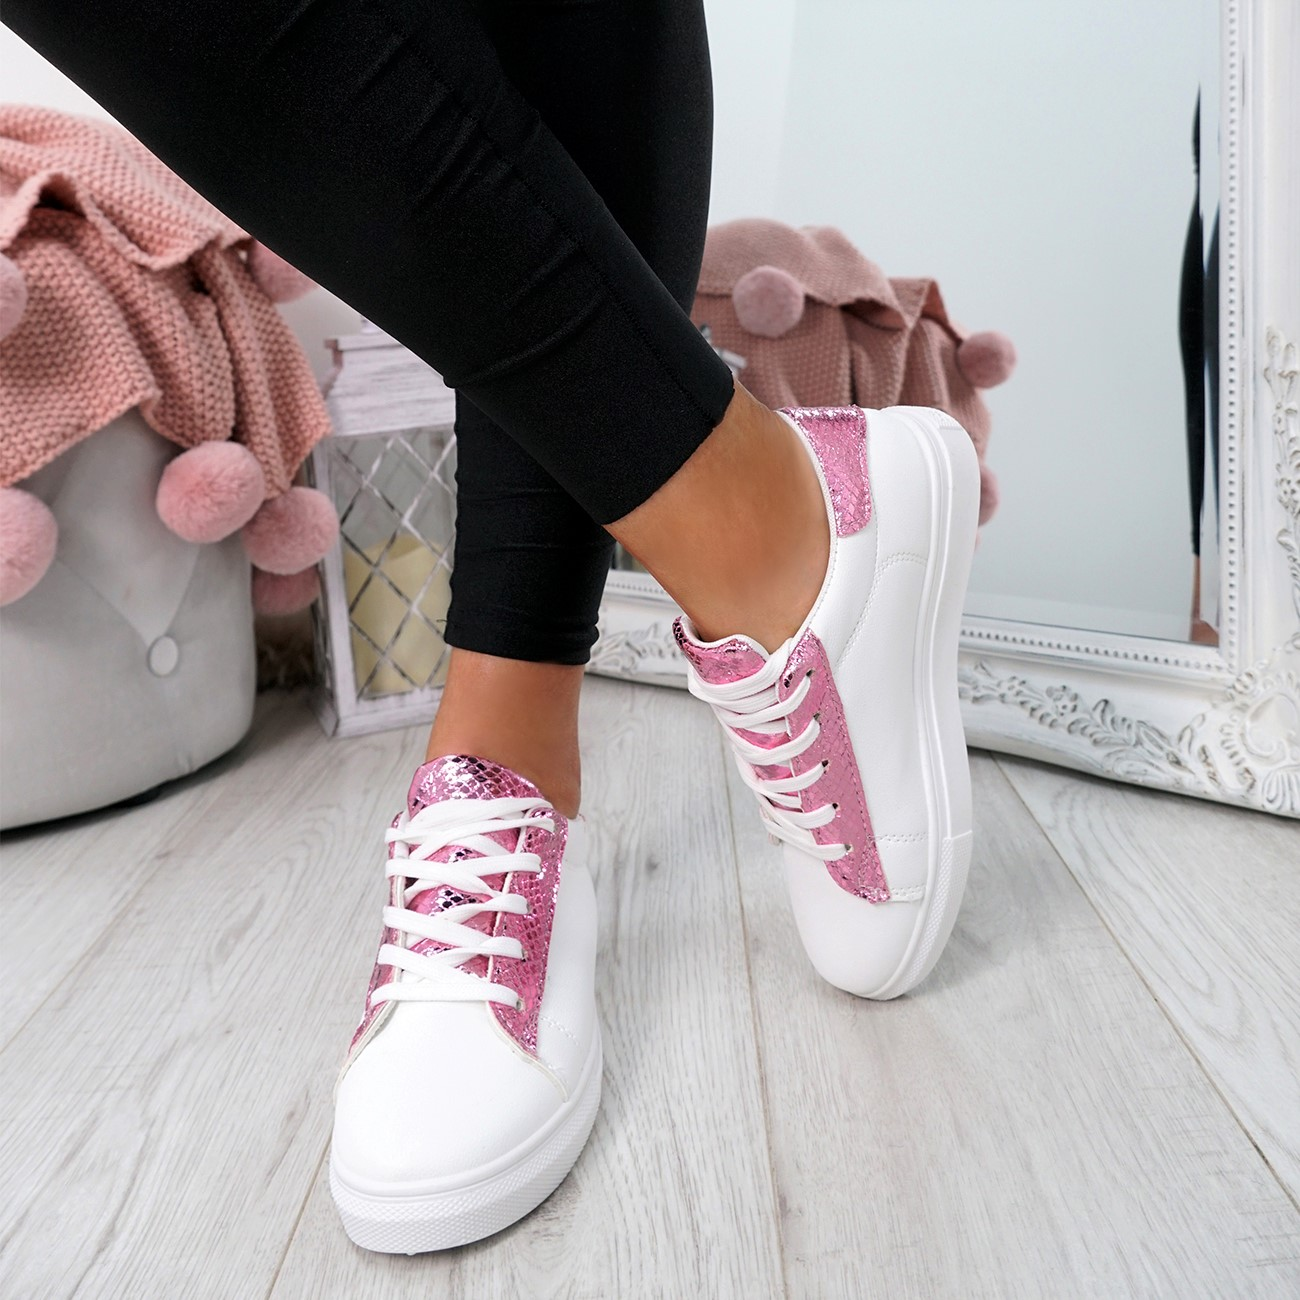 WOMENS-LADIES-SNAKE-SKIN-GLITTER-LACE-UP-TRAINERS-PLIMSOLLS-SNEAKERS-SHOES thumbnail 18